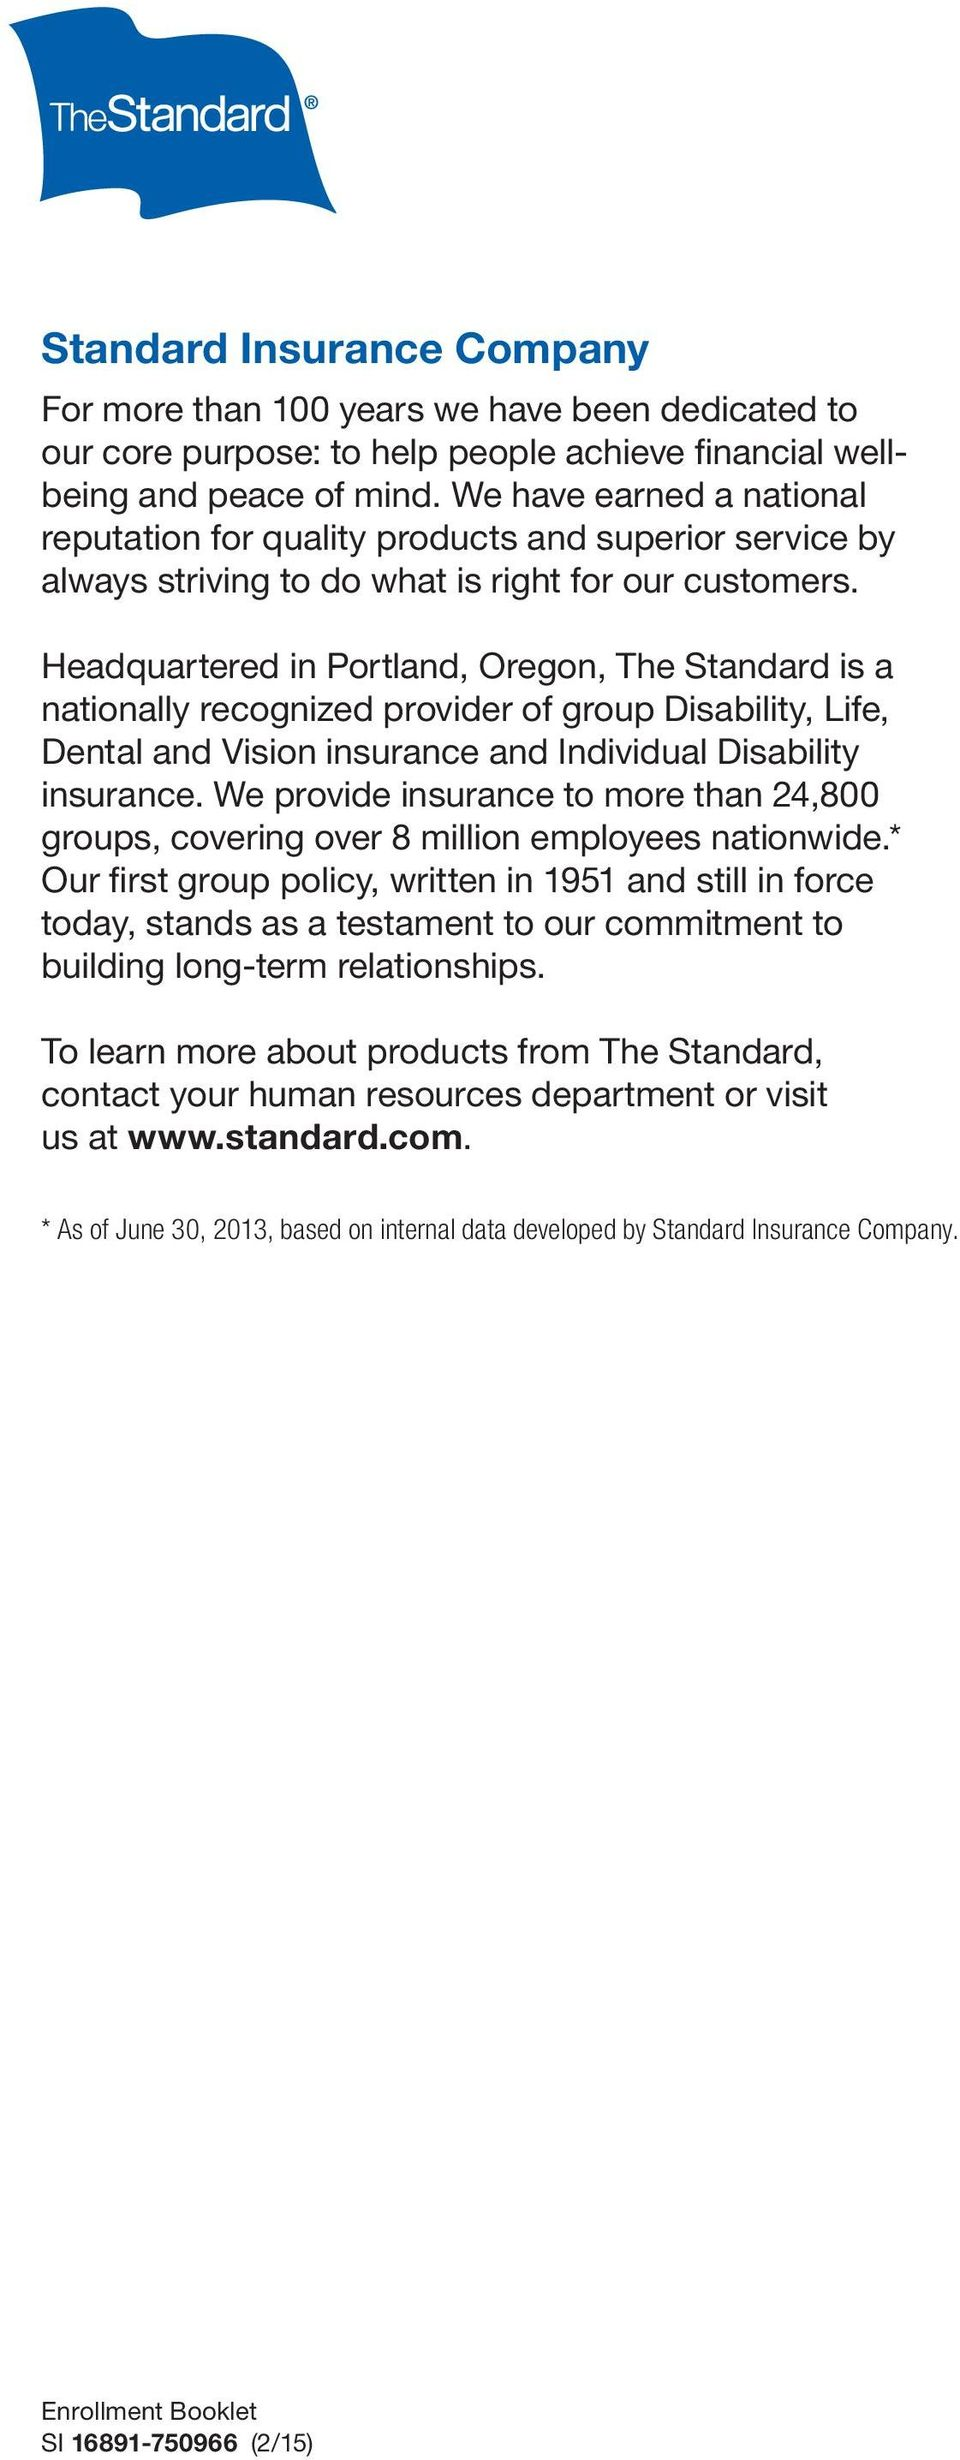 Headquartered in Portland, Oregon, The Standard is a nationally recognized provider of group Disability, Life, Dental and Vision insurance and Individual Disability insurance.